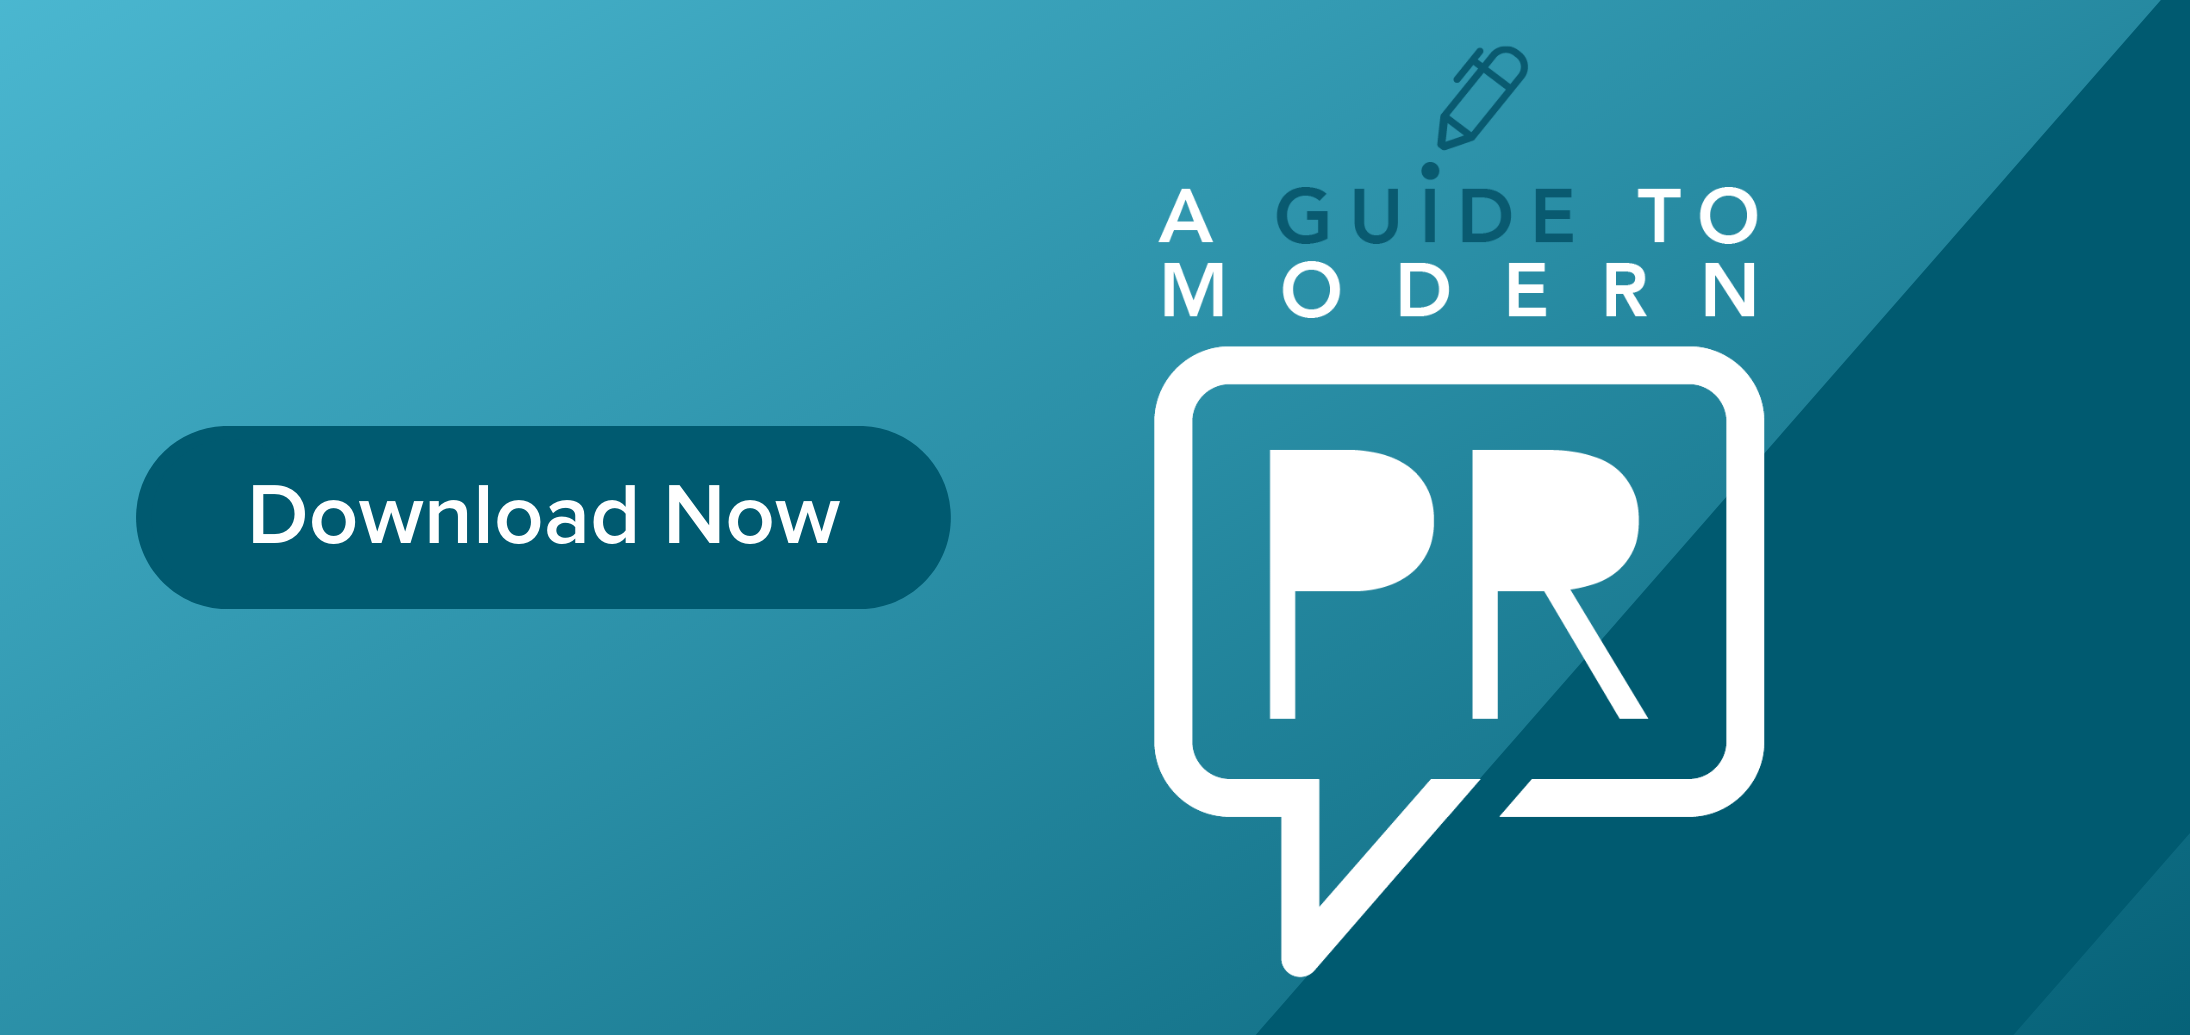 Modern-Guide-To-PR-Blue-Button